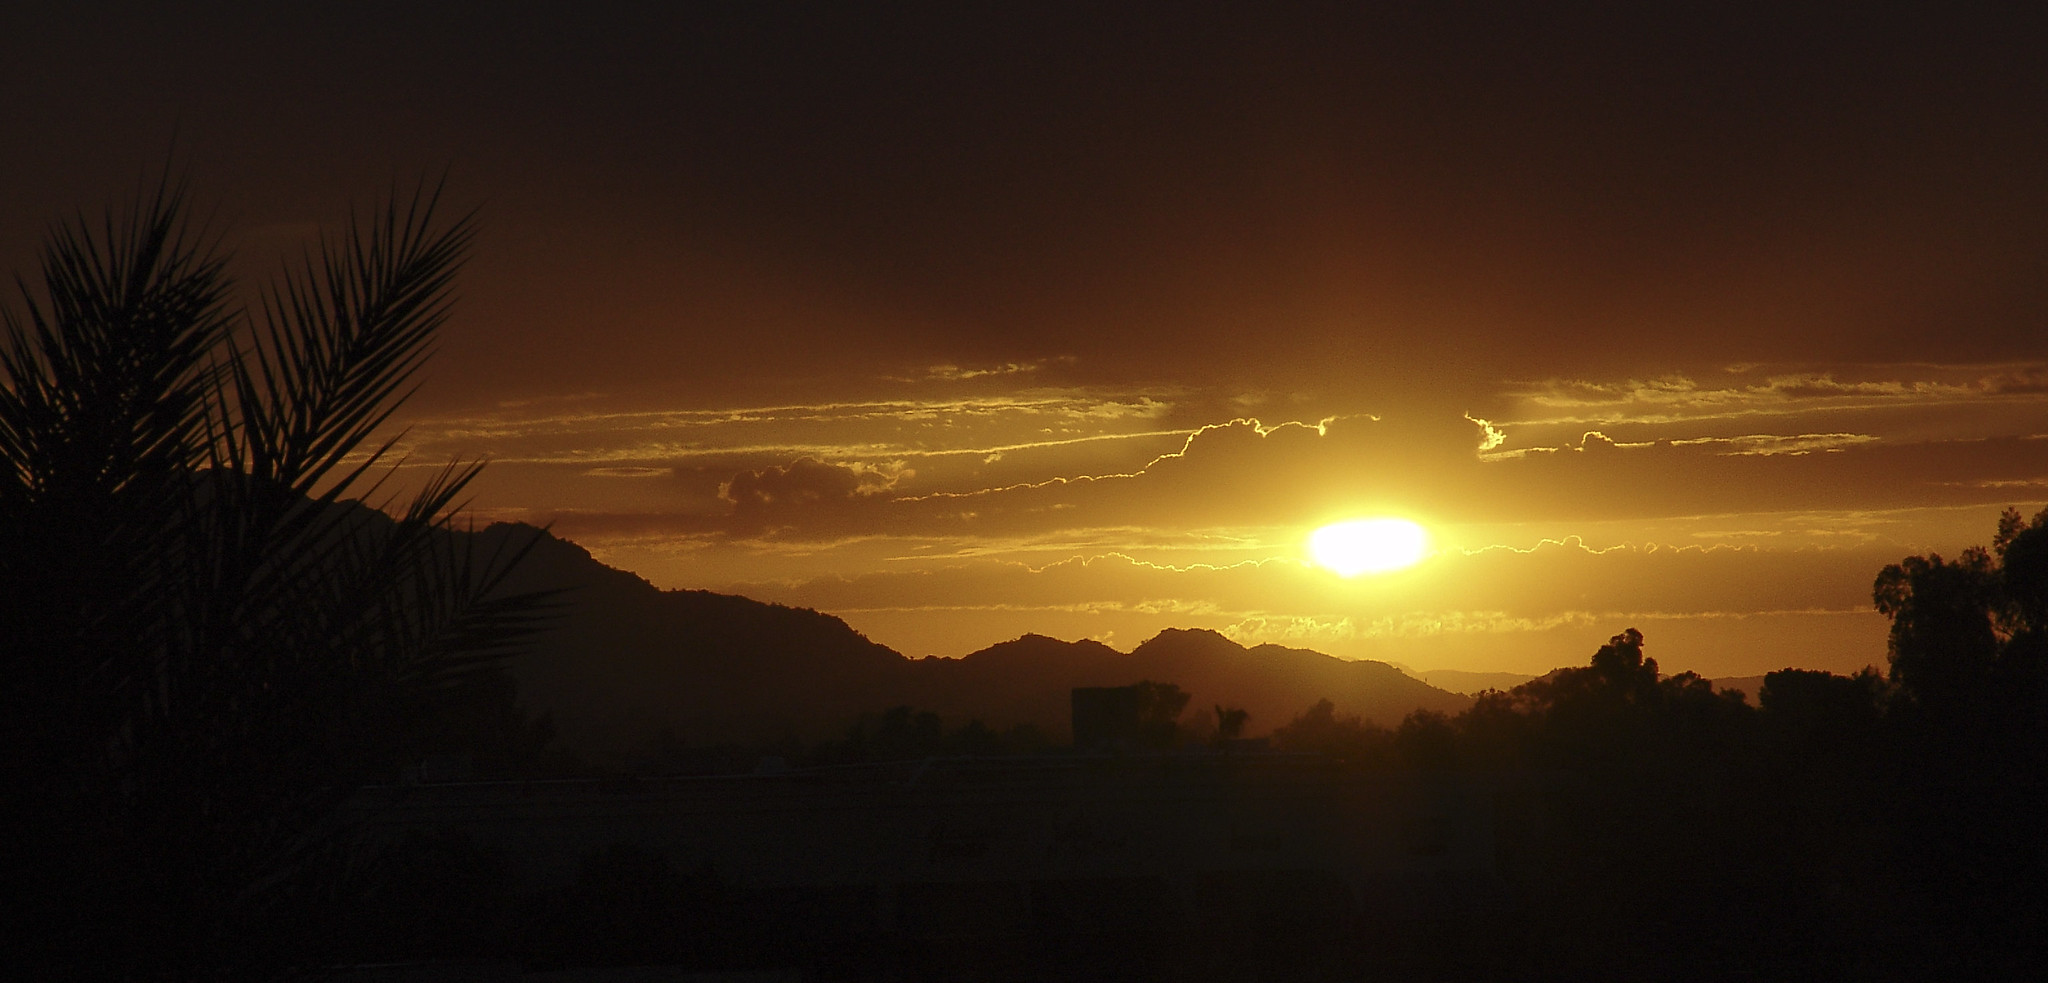 The golden sun sets over Phoenix, Arizona, reminding us that all will be okay as long as the sun sets and sun rises, the coronavirus won't beat us.